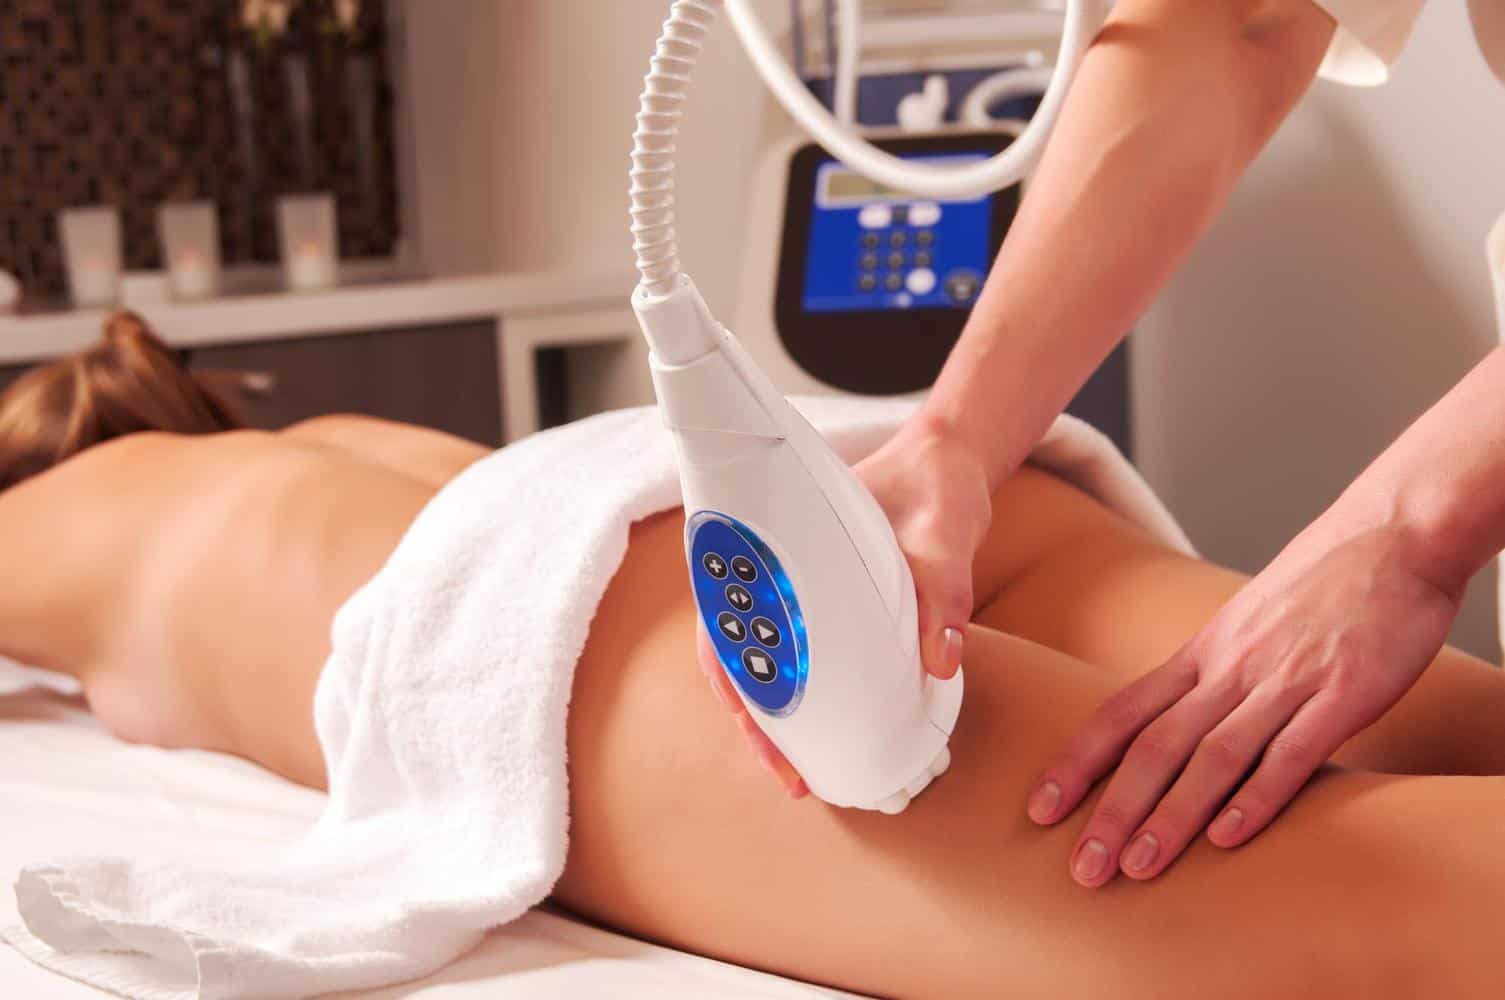 Woman being massaged with a cellulite massager.